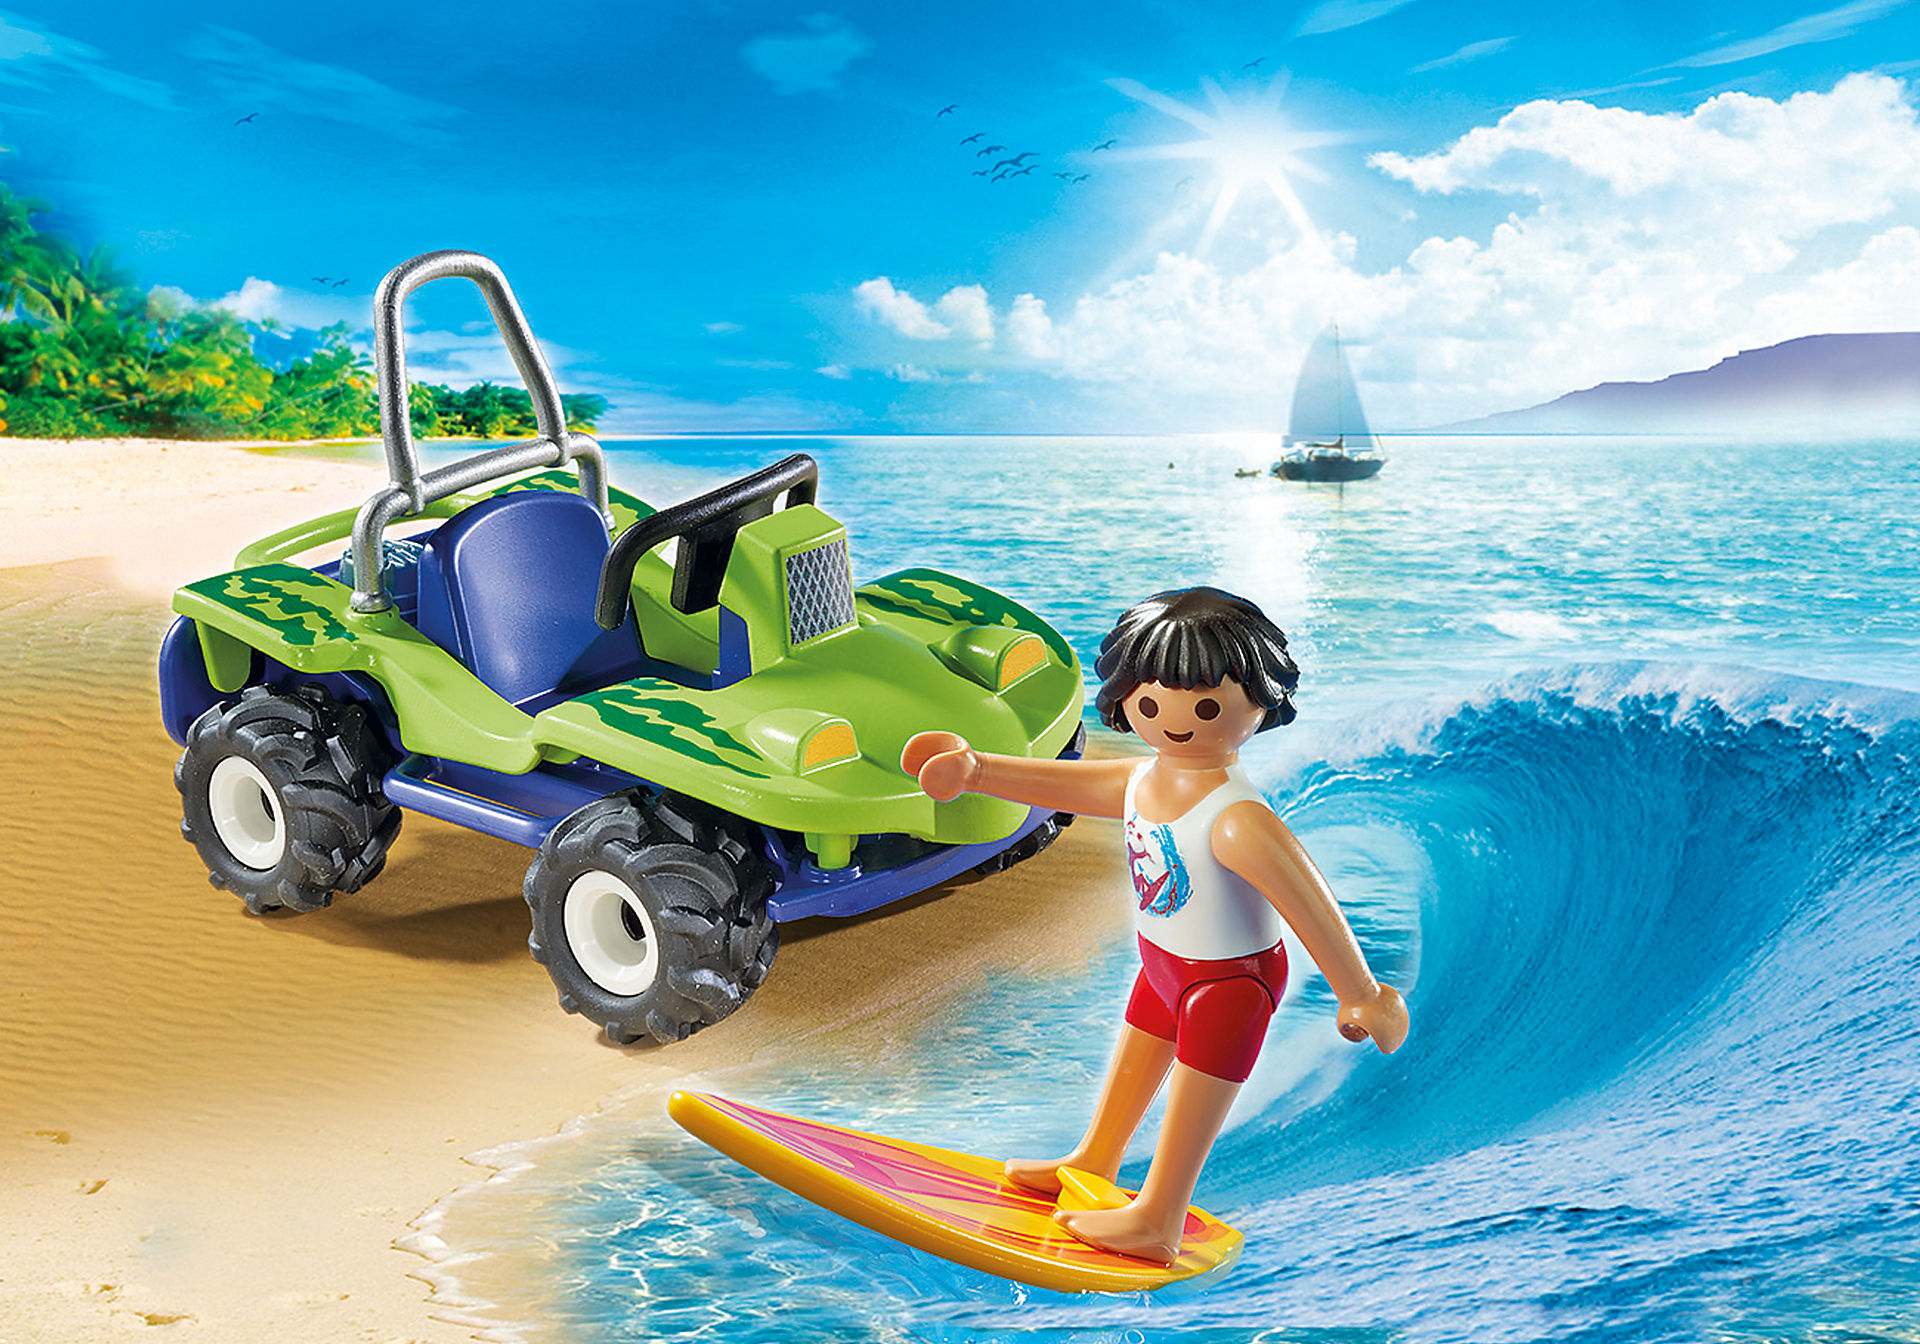 http://media.playmobil.com/i/playmobil/6982_product_detail/Surfer with Beach Quad